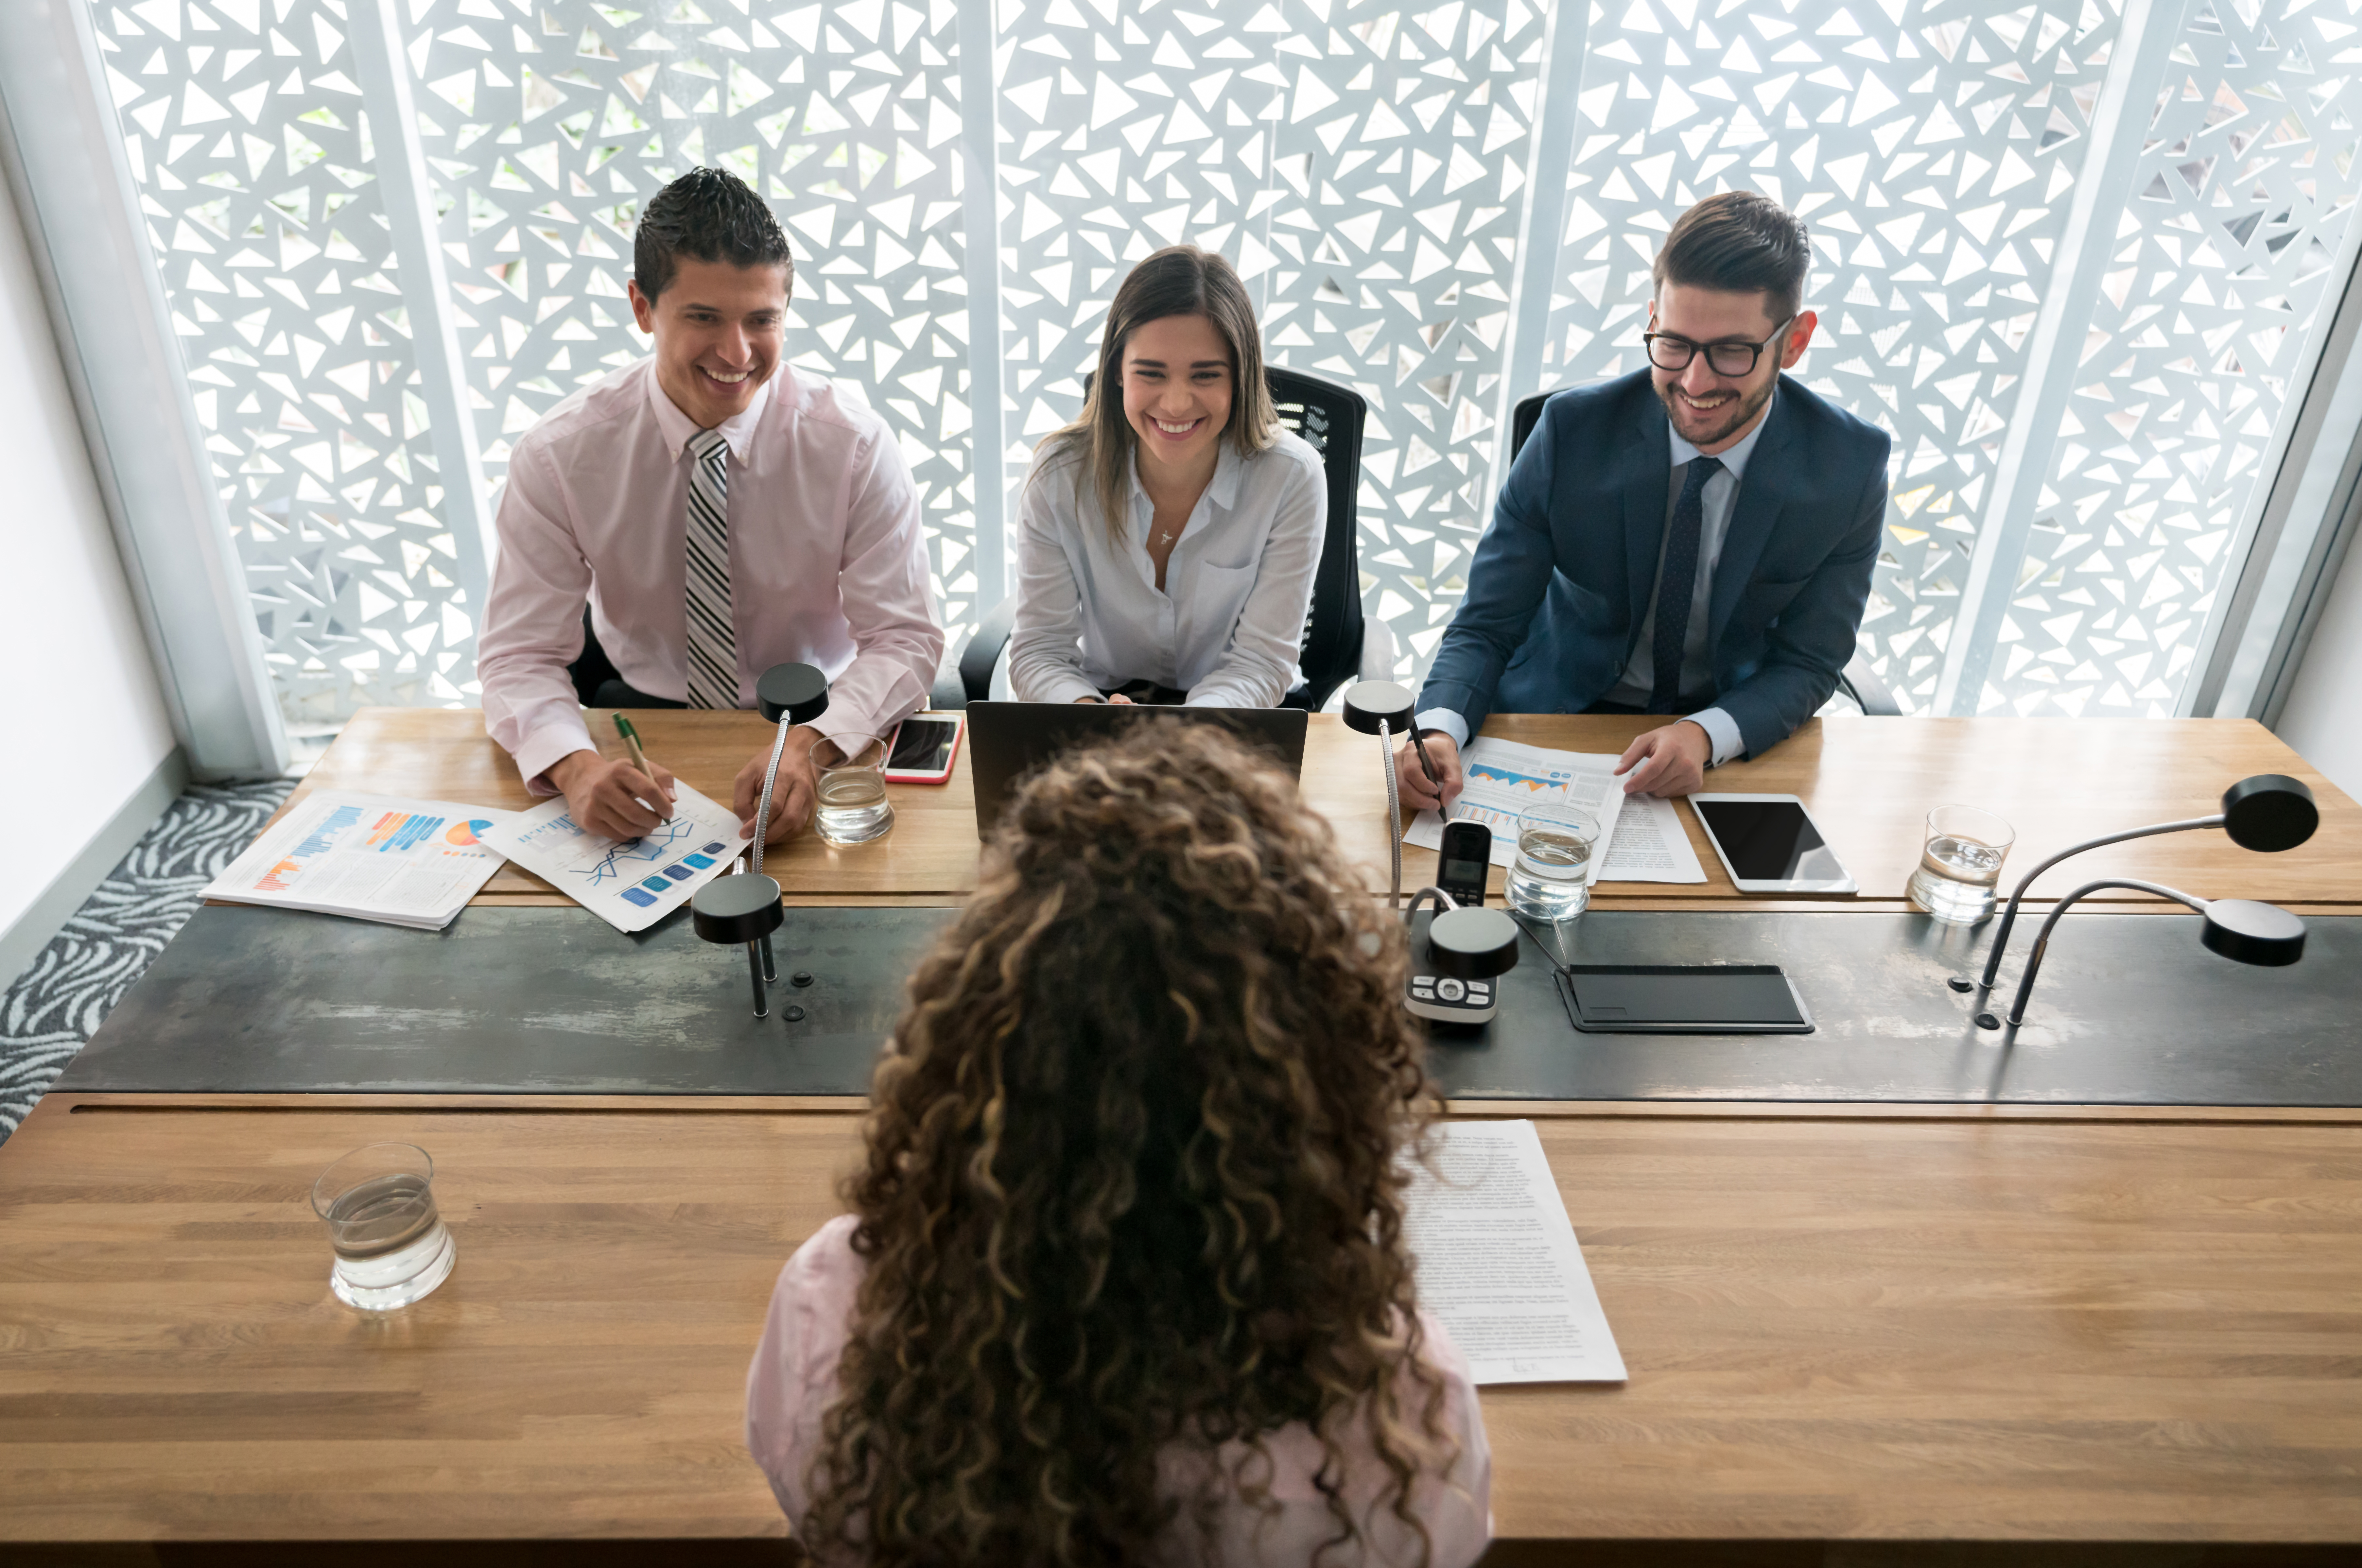 How to Inquire About a Job After an Interview | Chron com